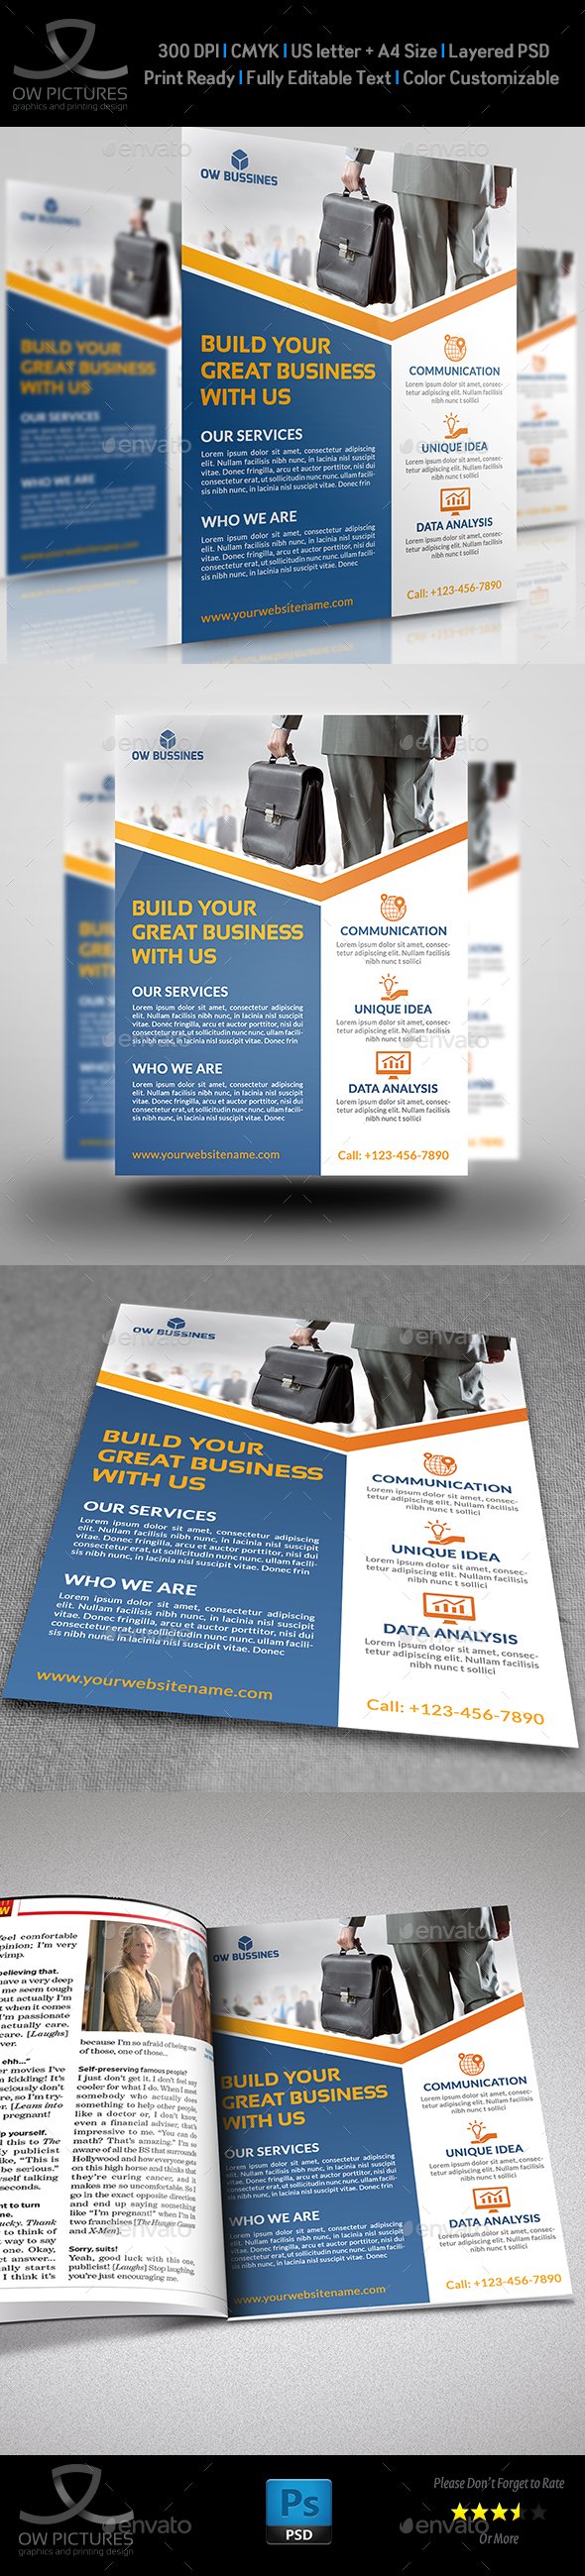 Corporate Business Flyer Template Vol.15 - Corporate Flyers